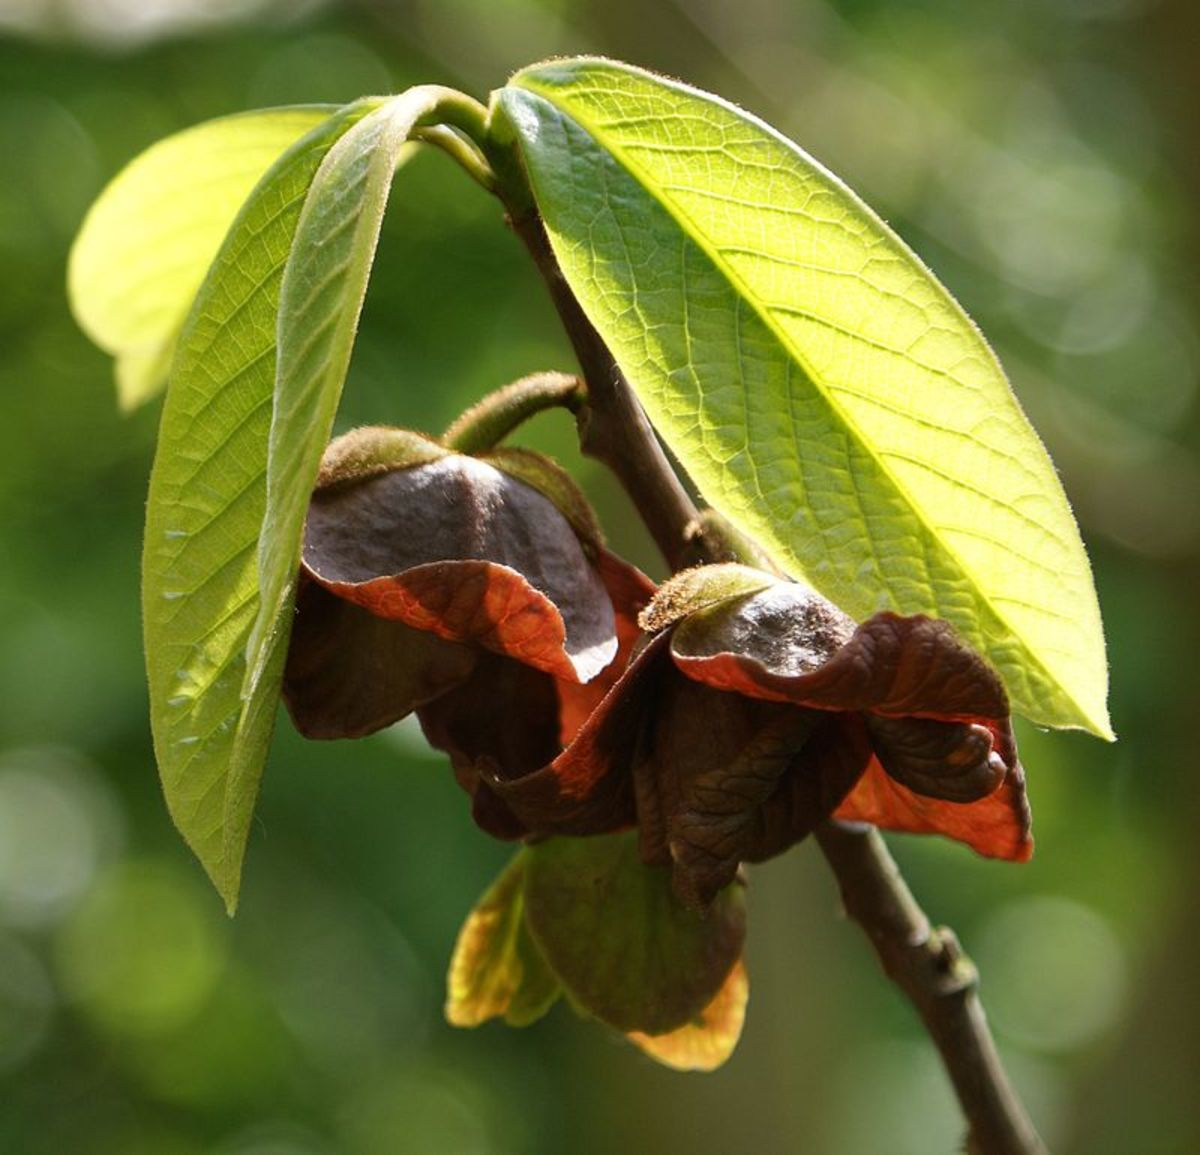 The flowers are brown and smell like spoiled meat to attract carrion eating flies.